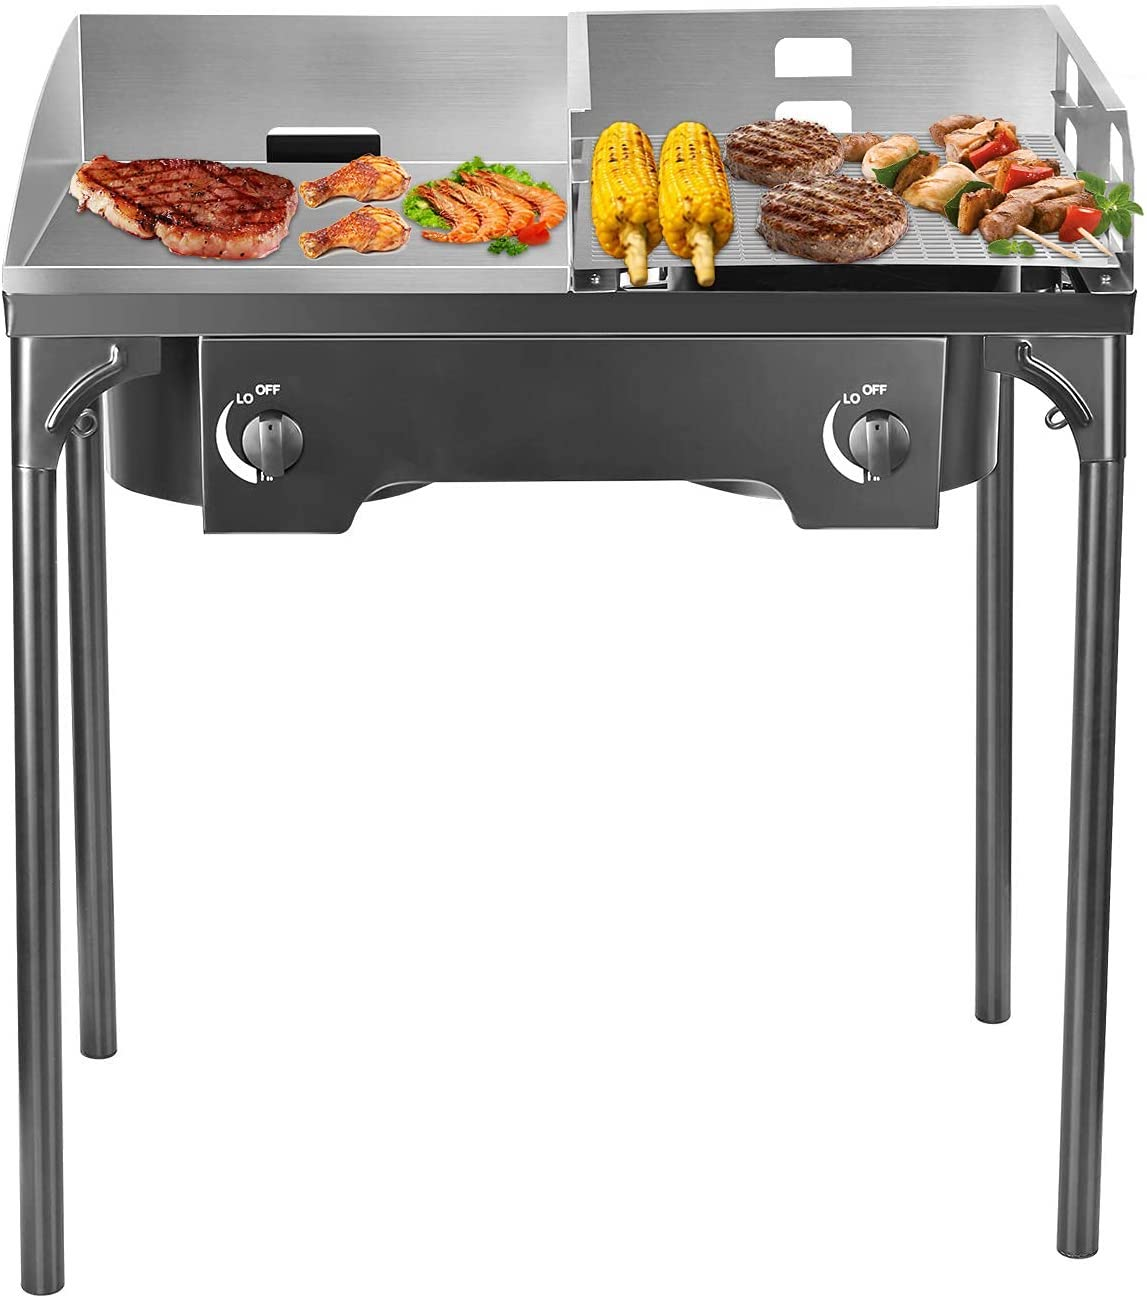 Best budget gas grill with griddle top-TELAM Gas Flat Top Grill